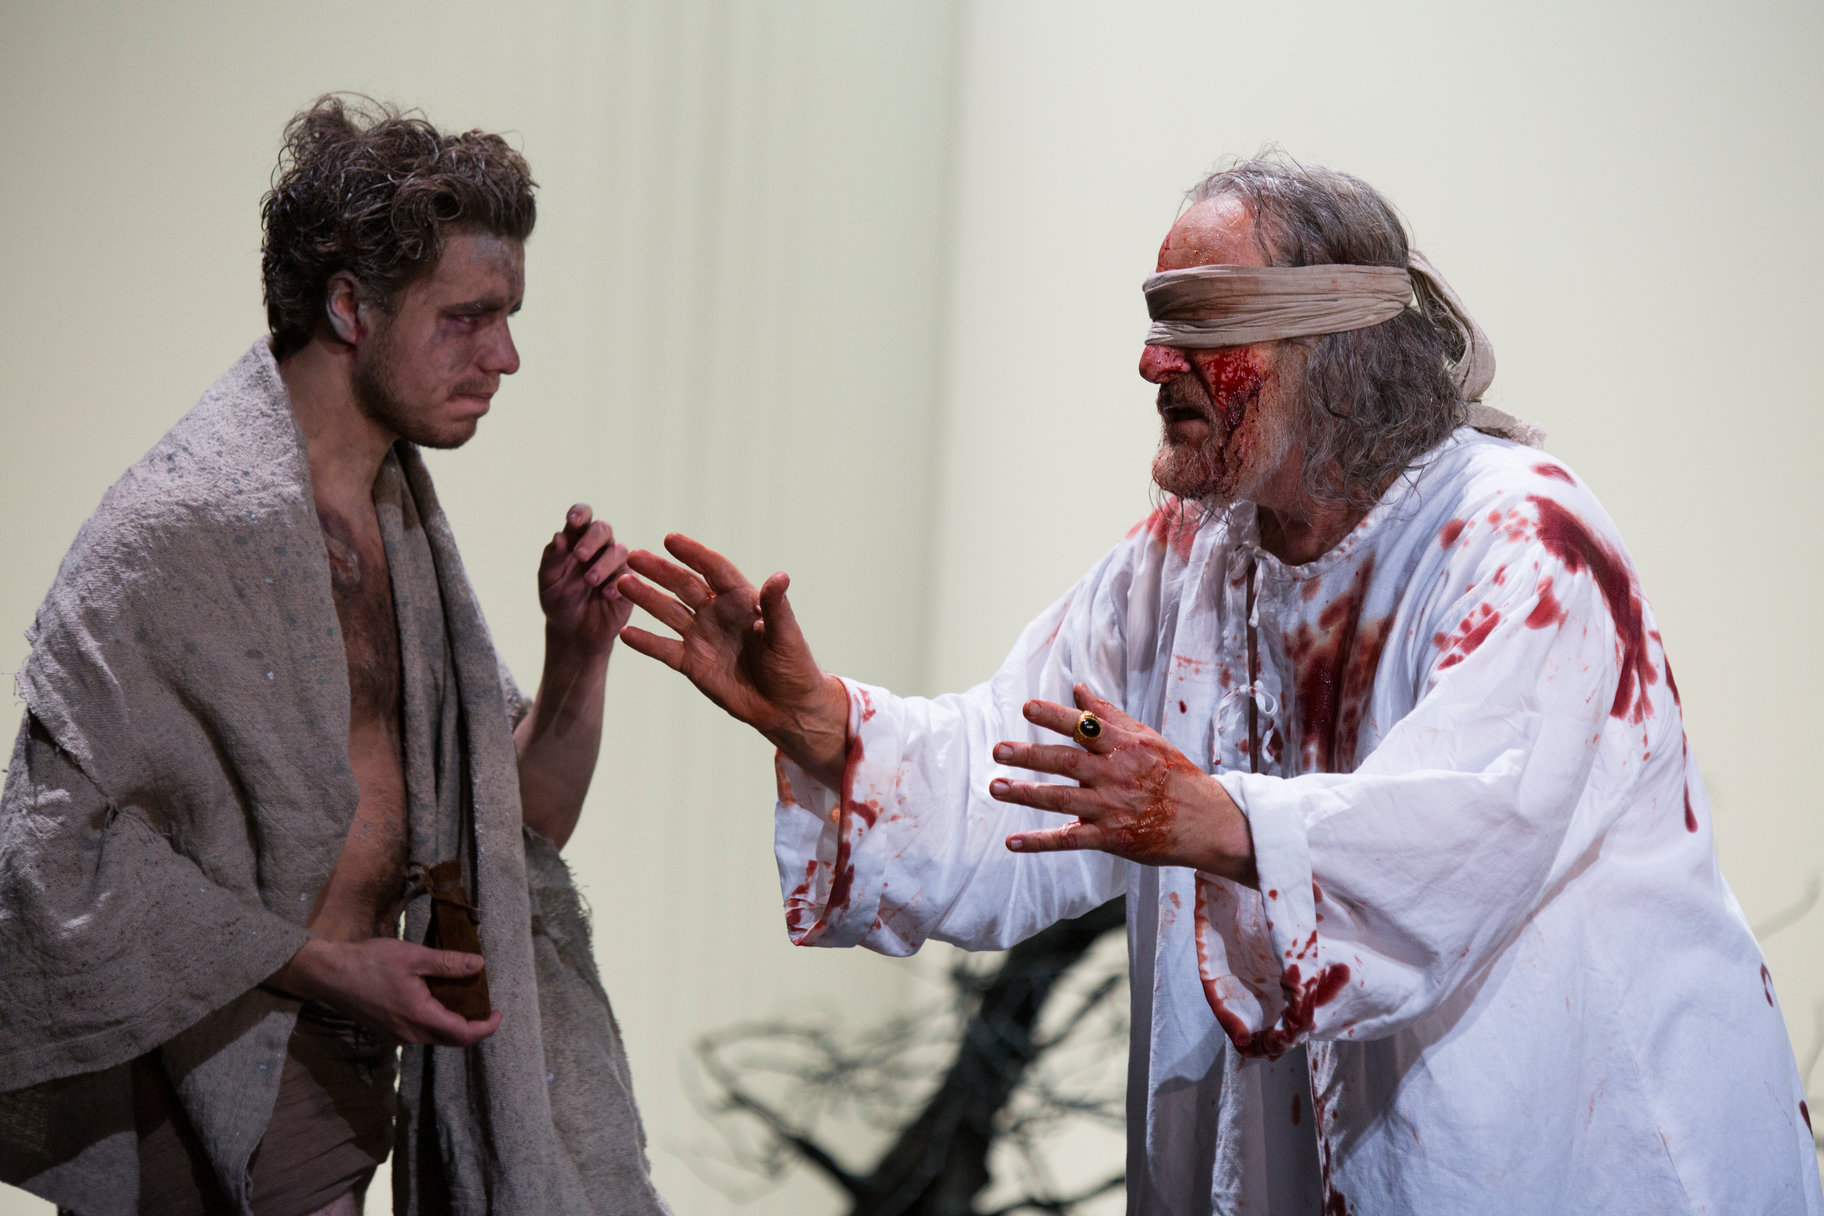 A dirty young man in a blanket talks to a blindfolded older man who is covered in blood.